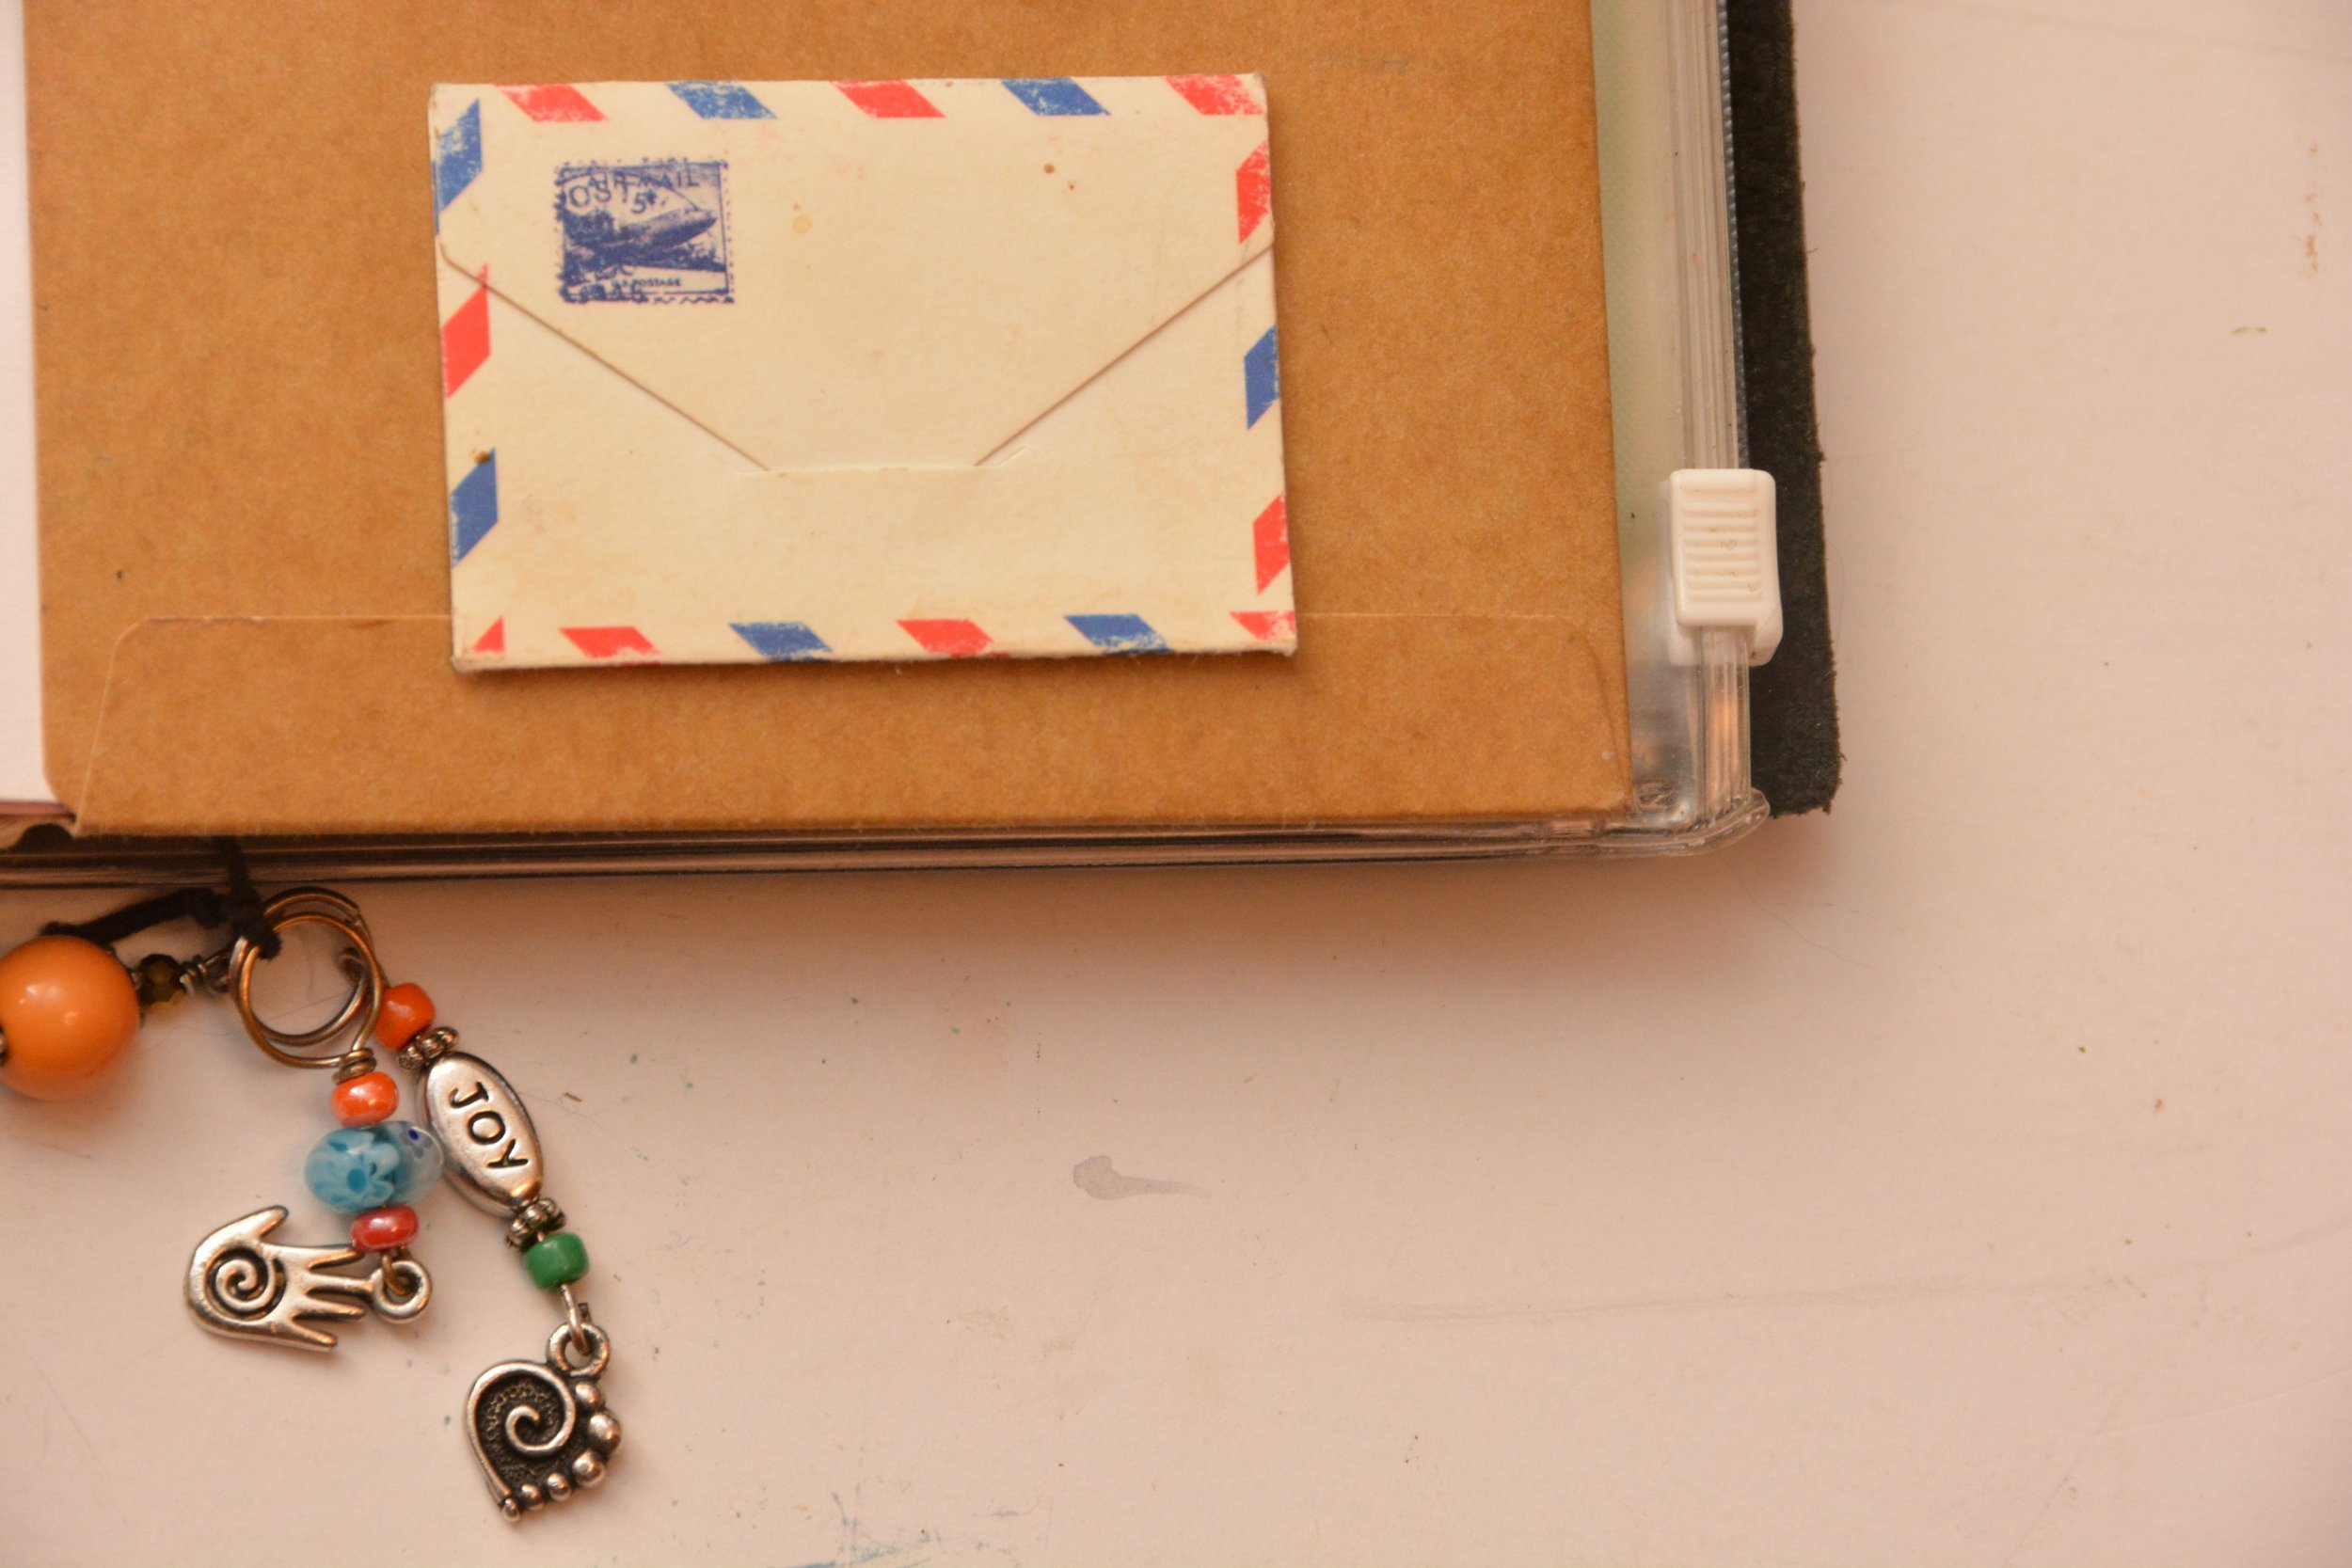 This tiny envelope contains a special date that is near and dear to my heart.